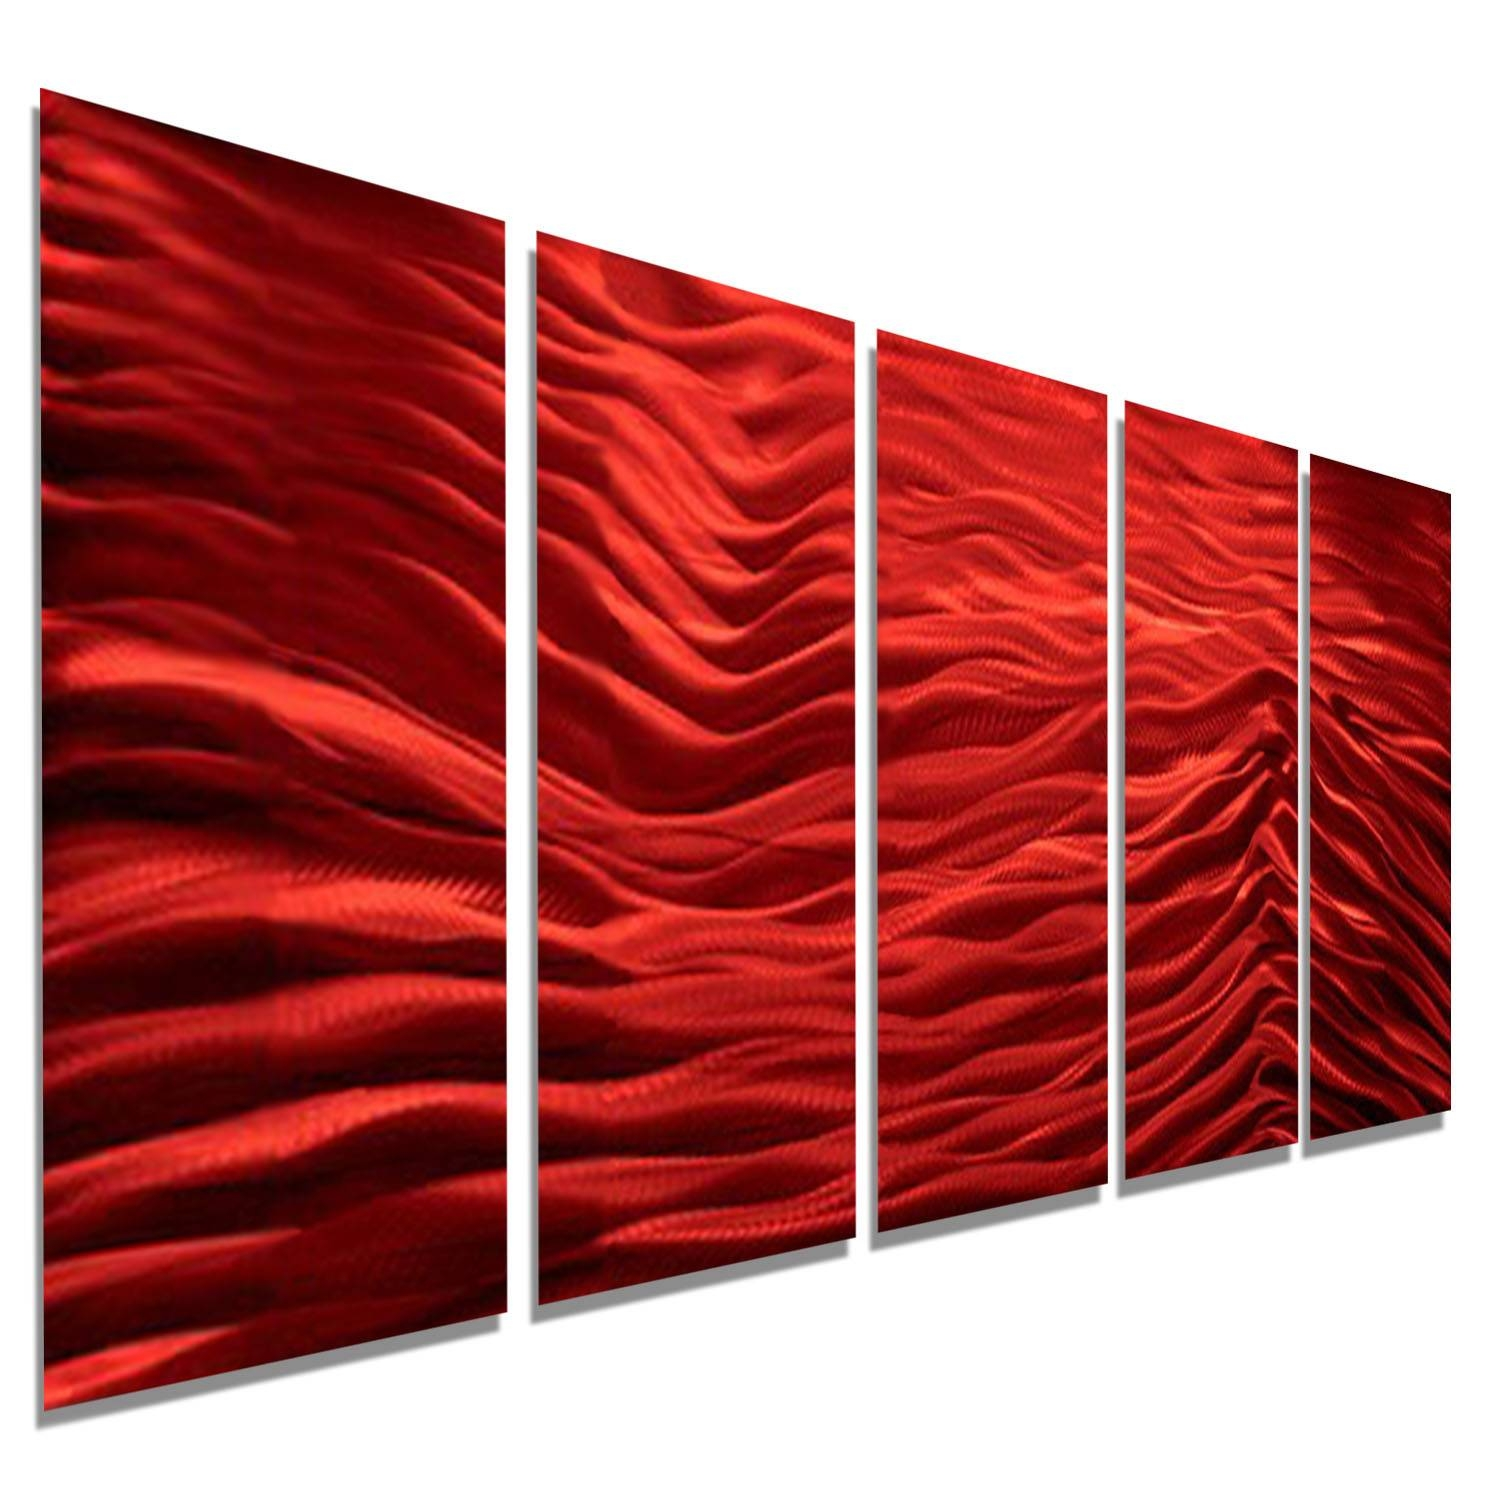 Gorgeous 10+ Red Metal Wall Art Decorating Design Of Red Twist In 2018 Ash Carl Metal Wall Art (Gallery 14 of 30)